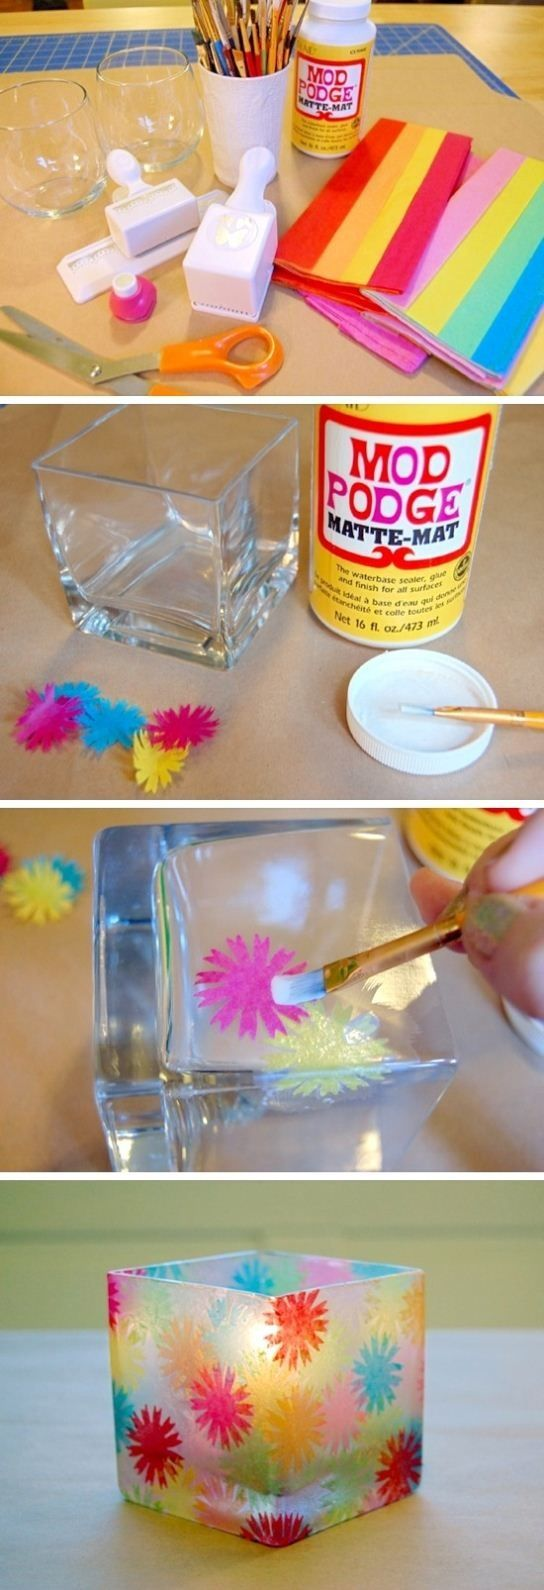 Such an easy way to make glasses look great!: